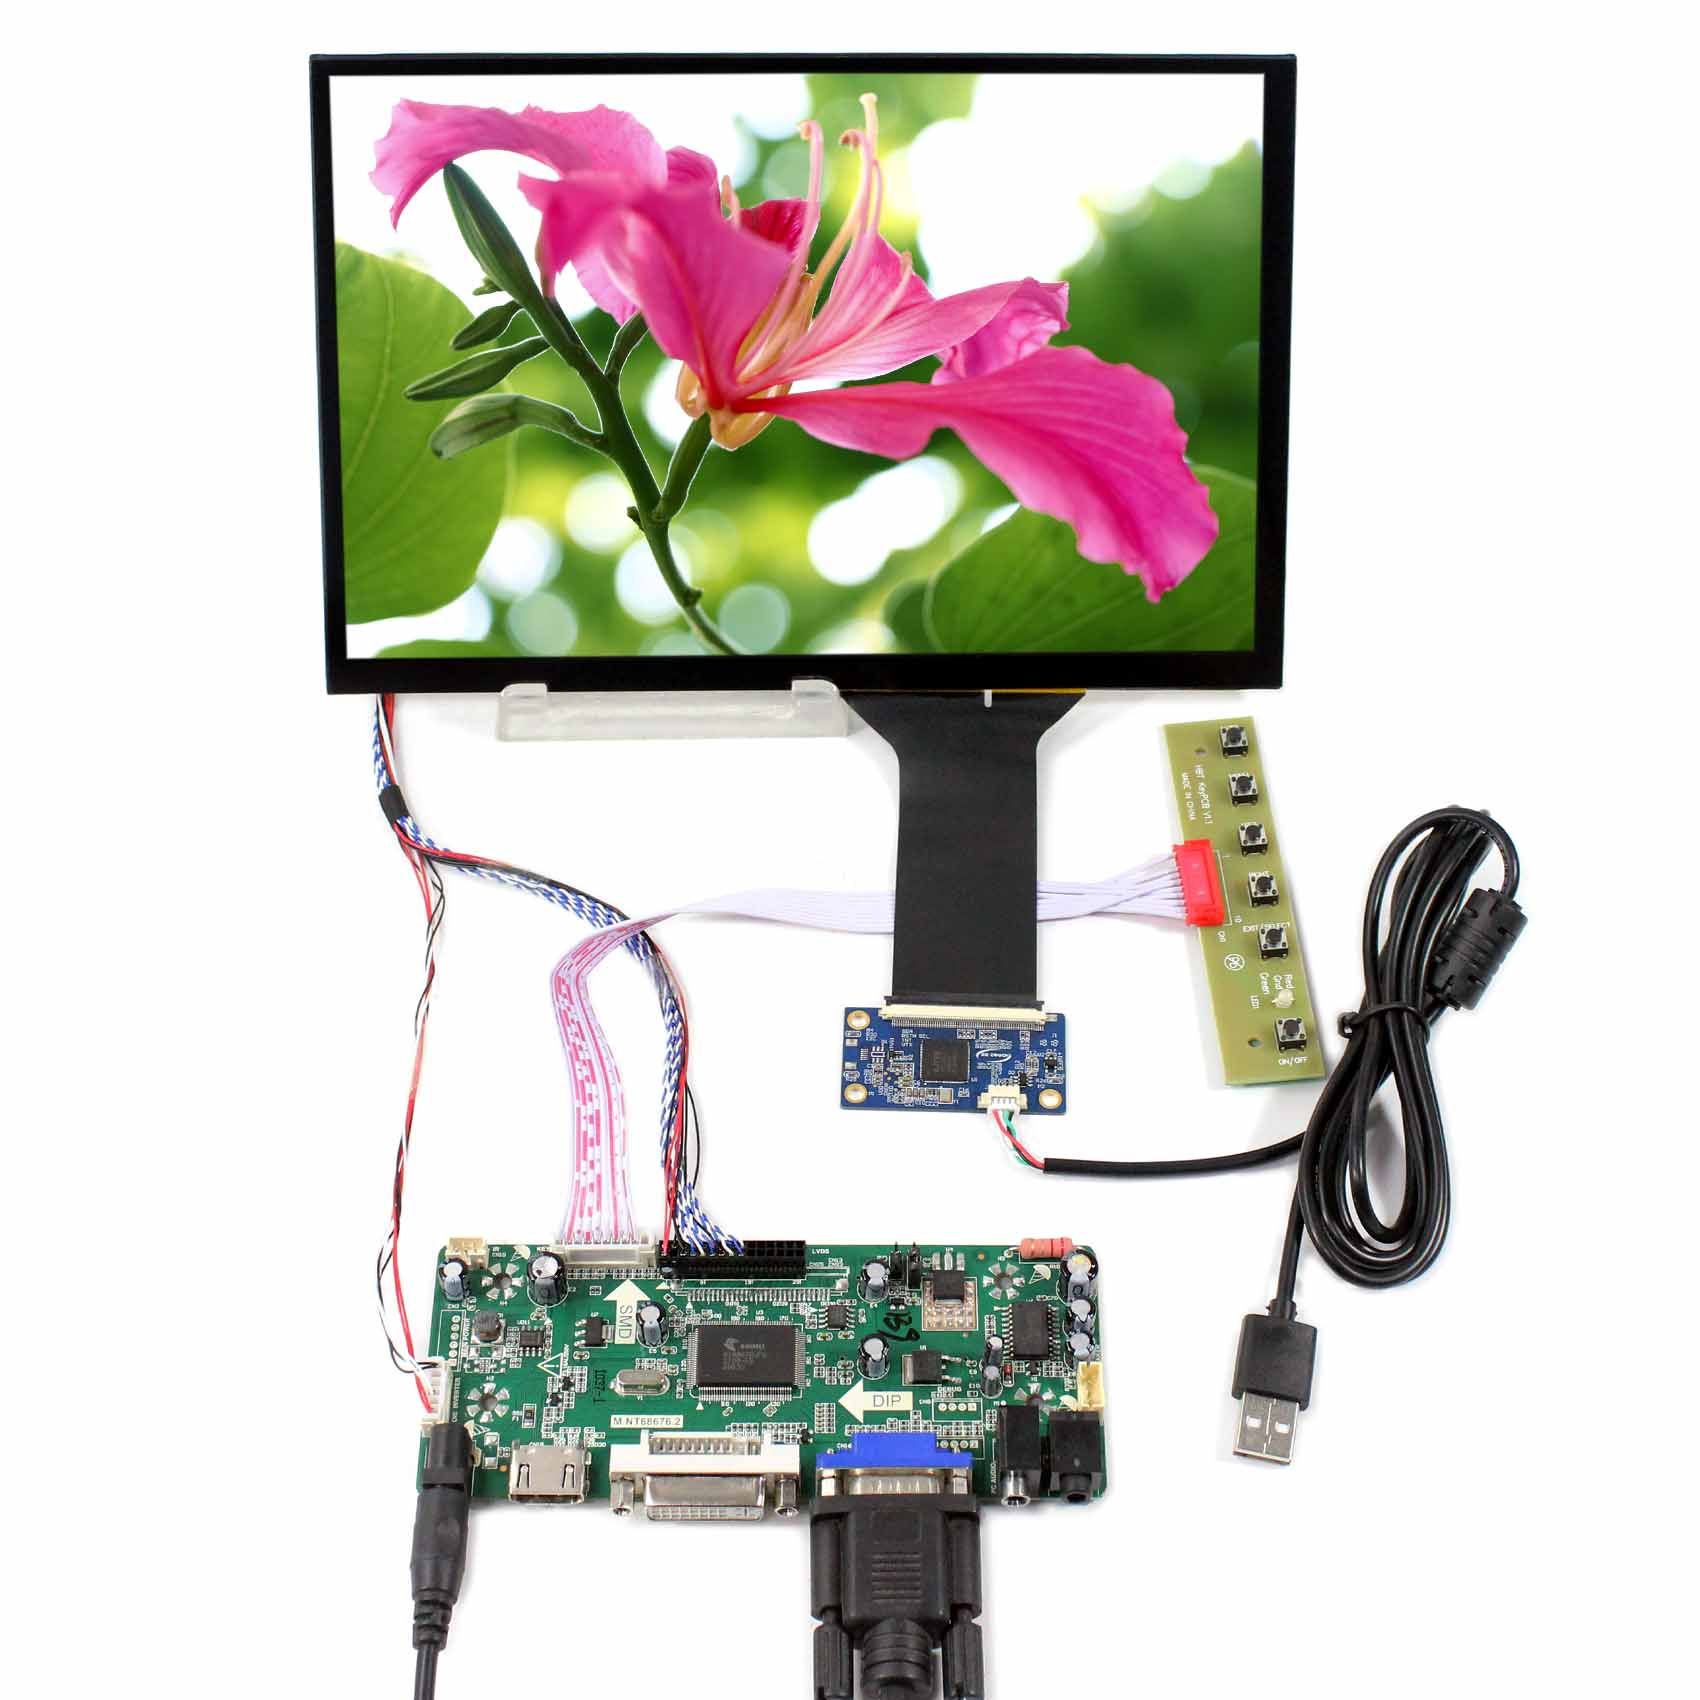 HDMI VGA DVI LCD Controller Board work with 10.1inch 1280x800 LCD  M101NWWB With Capacitive Touch screen   HDMI VGA DVI LCD Controller Board work with 10.1inch 1280x800 LCD  M101NWWB With Capacitive Touch screen